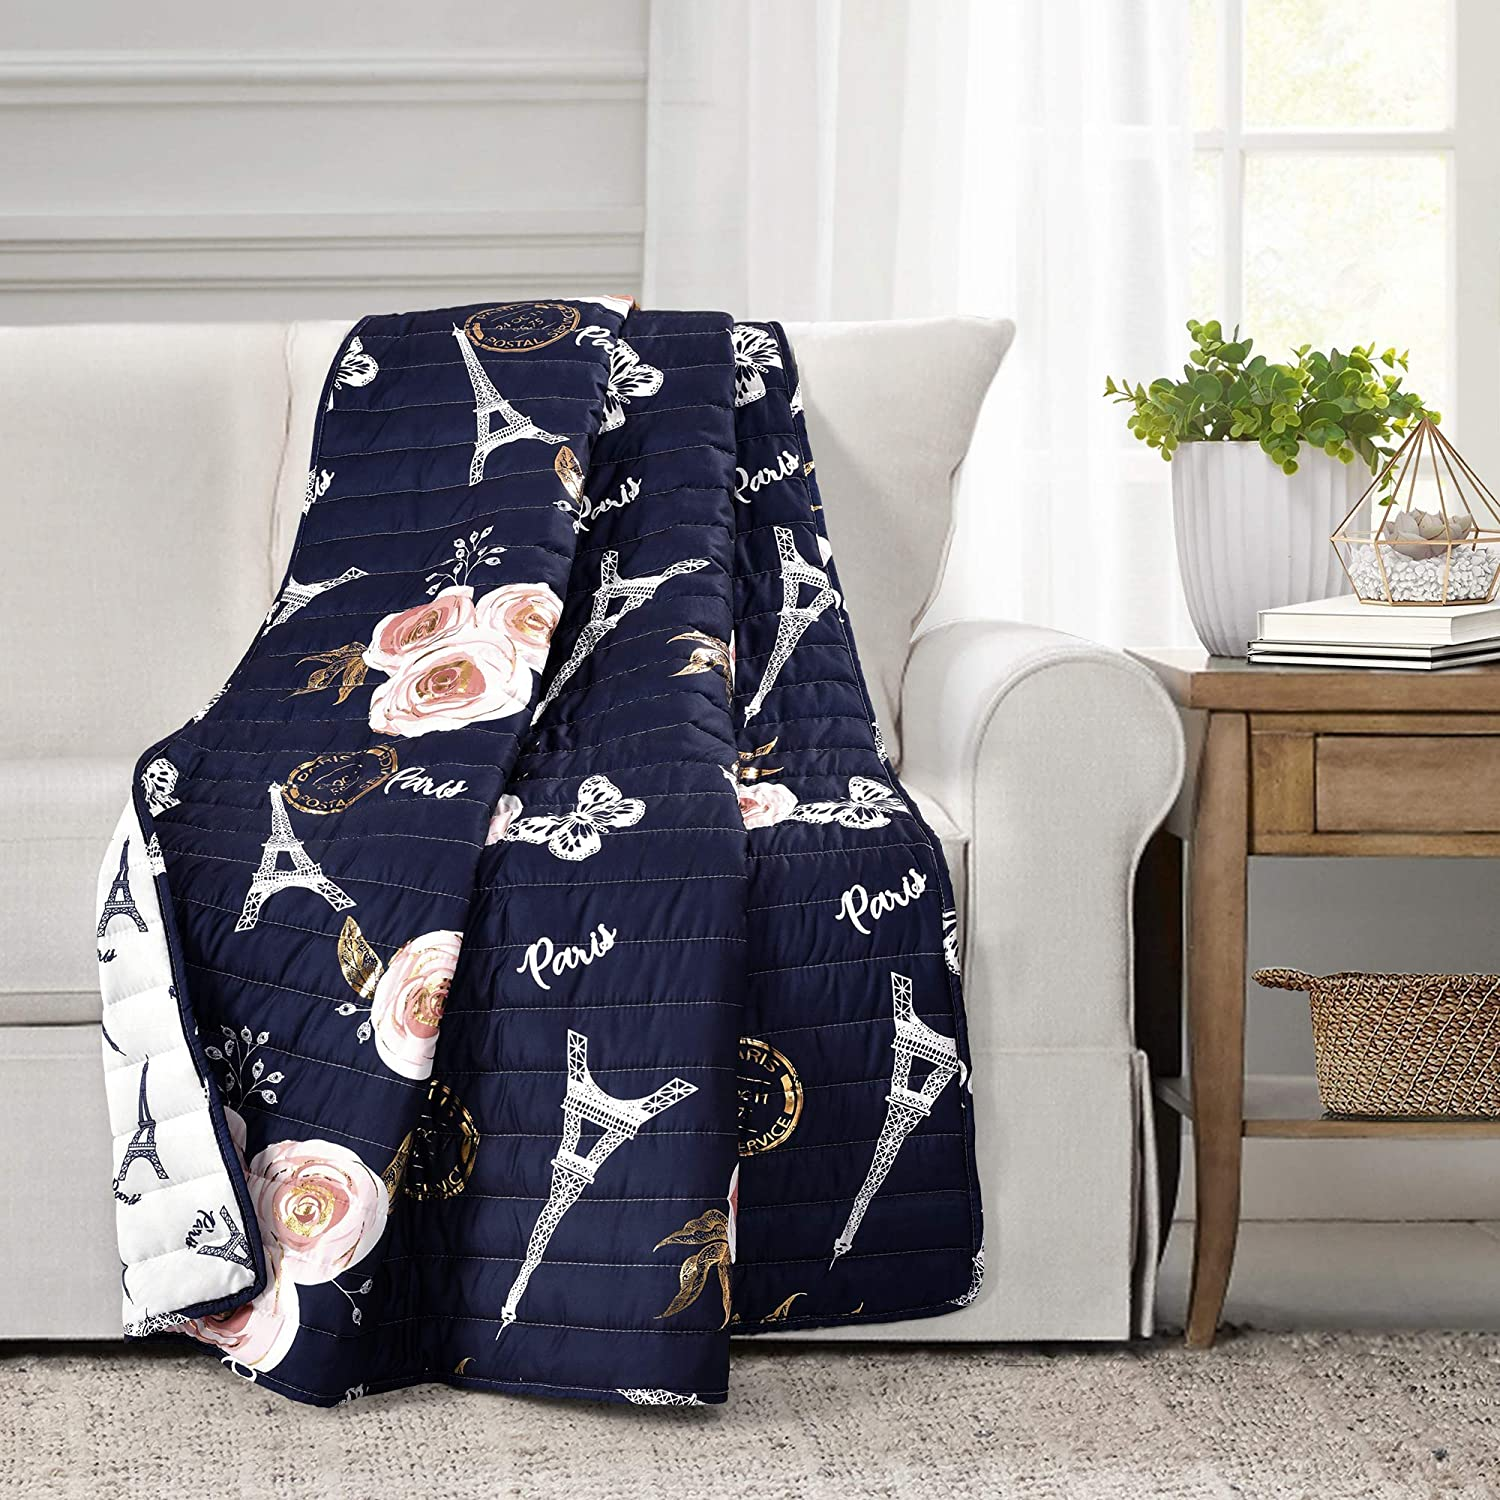 """Lush Decor Reversible Throw Blanket, Navy Vintage Print with Paris-Themed Design, Soft Polyester Fabric, Cozy Couch and Bed Accent (50"""" x 60"""